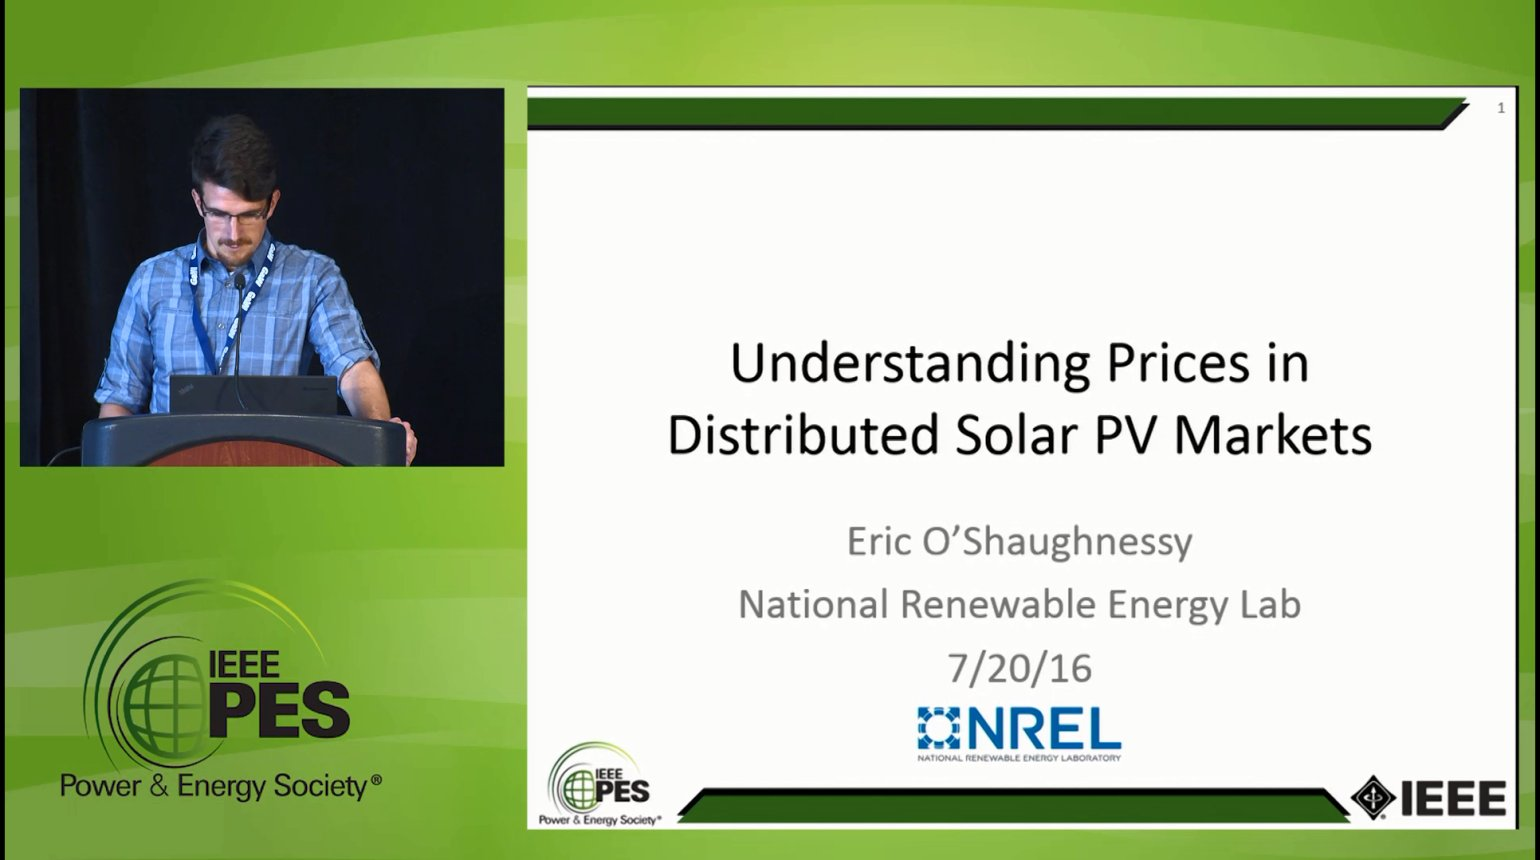 Managing Demand in a Variable Supply World - Understanding Prices in Distributed Solar PV Markets (Video)